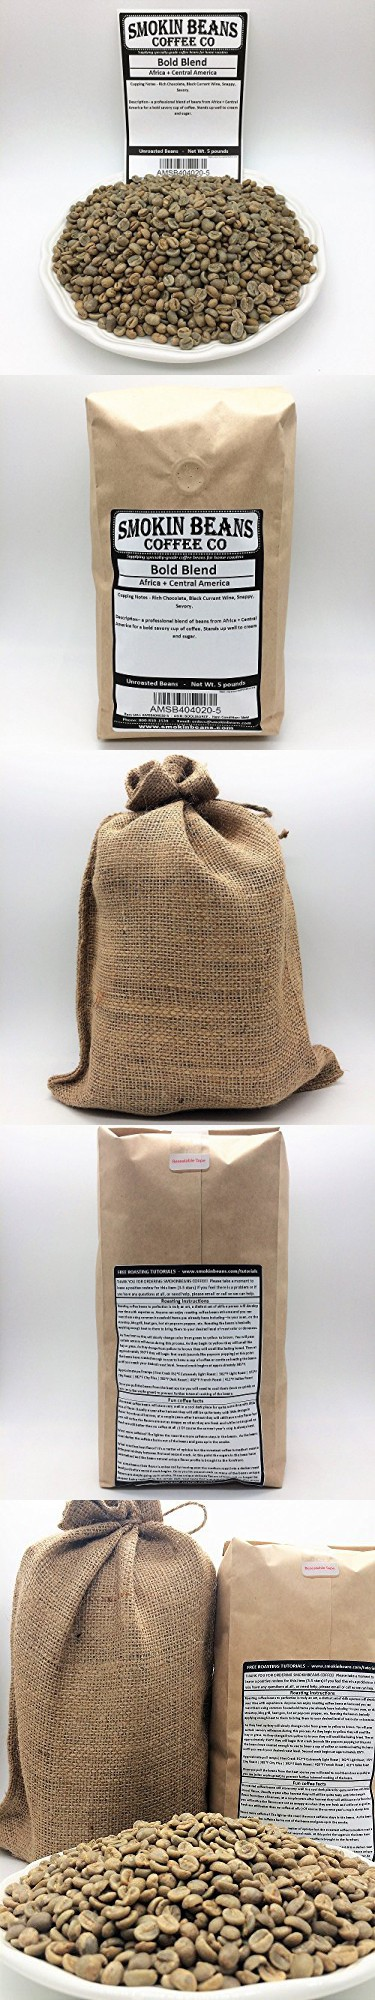 5 Lbs Signature Bold Blend In A Burlap Bag Includes Coffee Beans From Africa